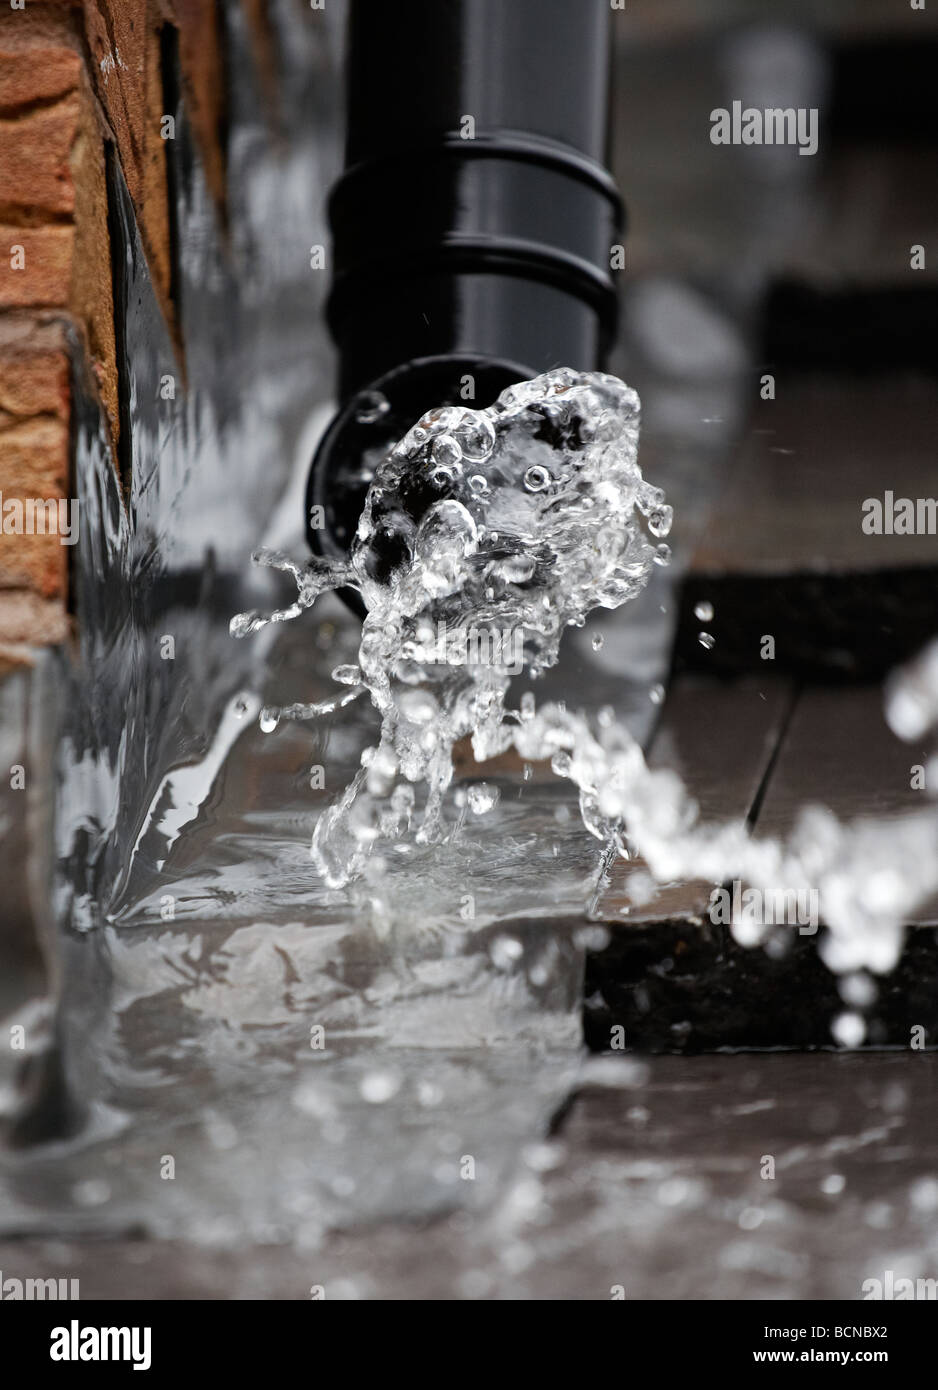 Rain water gushing from a drainpipe at a house in Worcestershire, UK - Stock Image